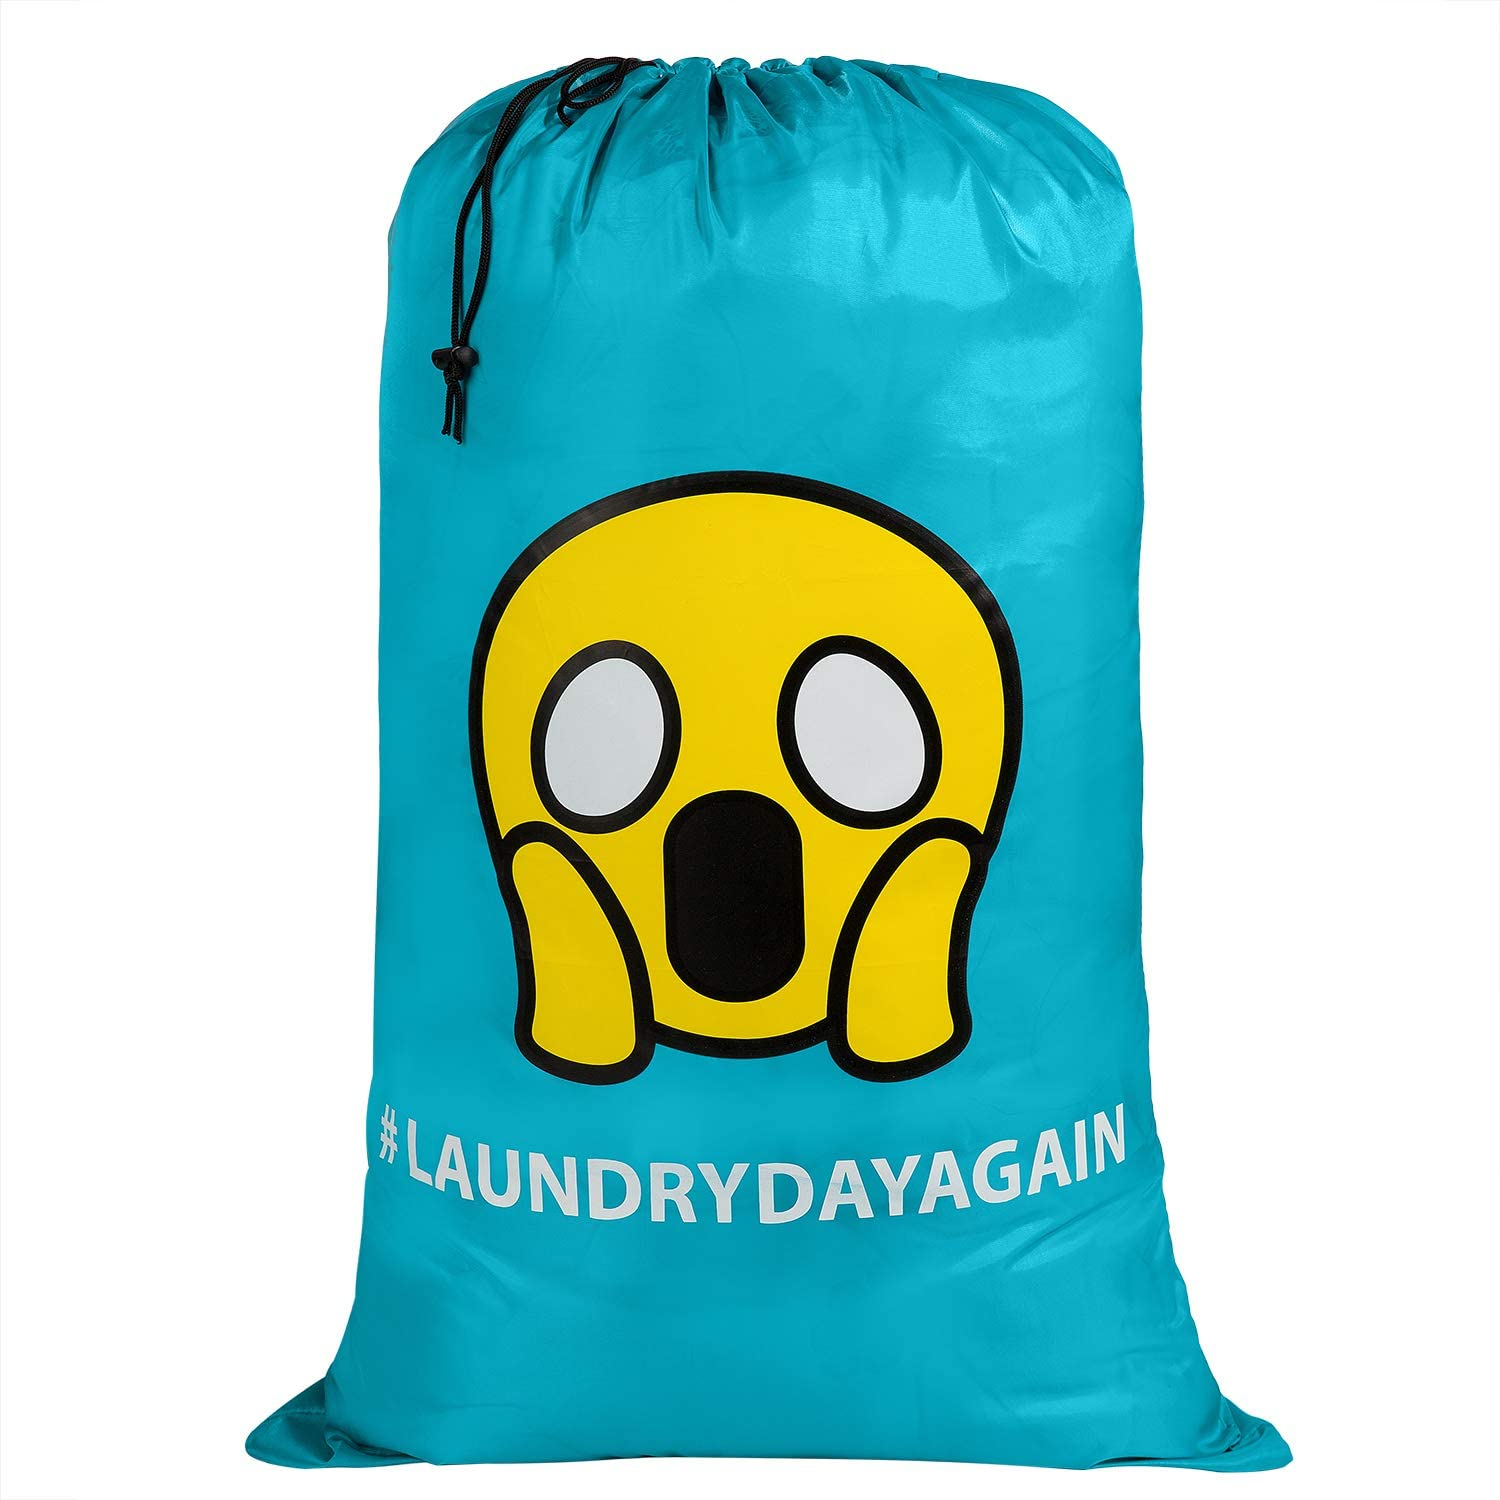 KSMA Travel Large Laundry Bag 24X36 Inches,Printed Rip-Stop Nylon Heavy Duty Dirty Clothes Bag with Drawstring Hamper Liner